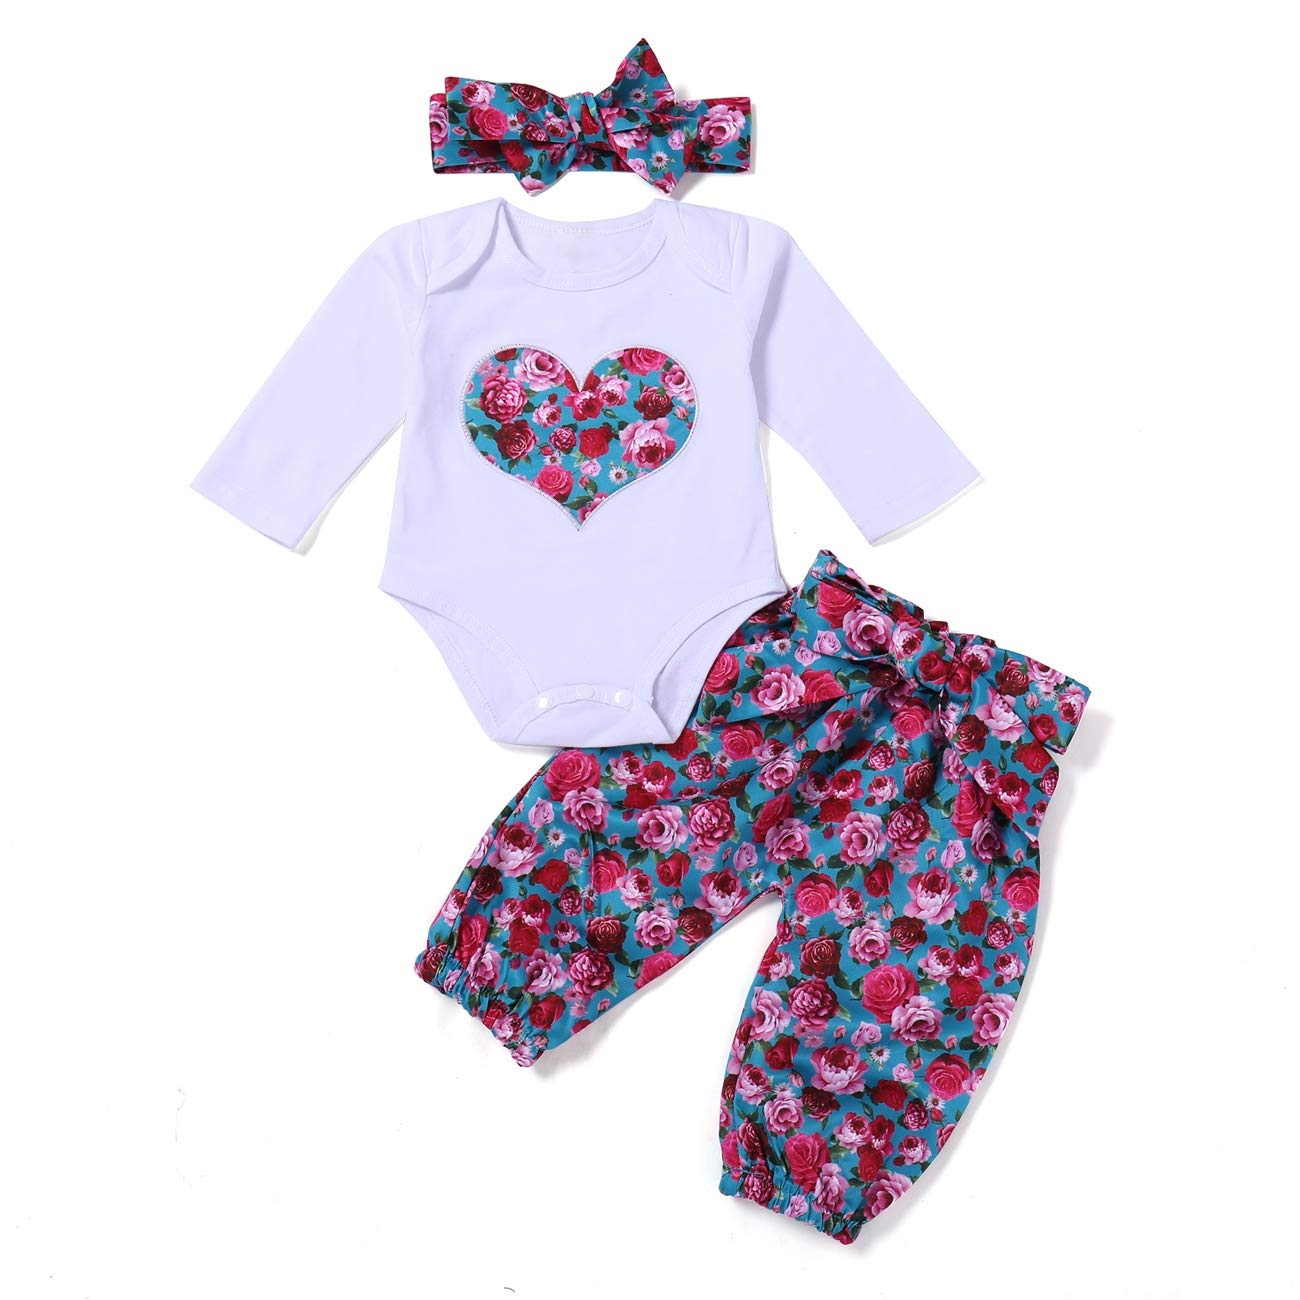 WOSENHK Newborn Baby Girls Clothes Love Heart Floral Printed Long Sleeve Romper Flower Pants Headband Outfits Set (red, 70/3-6months)